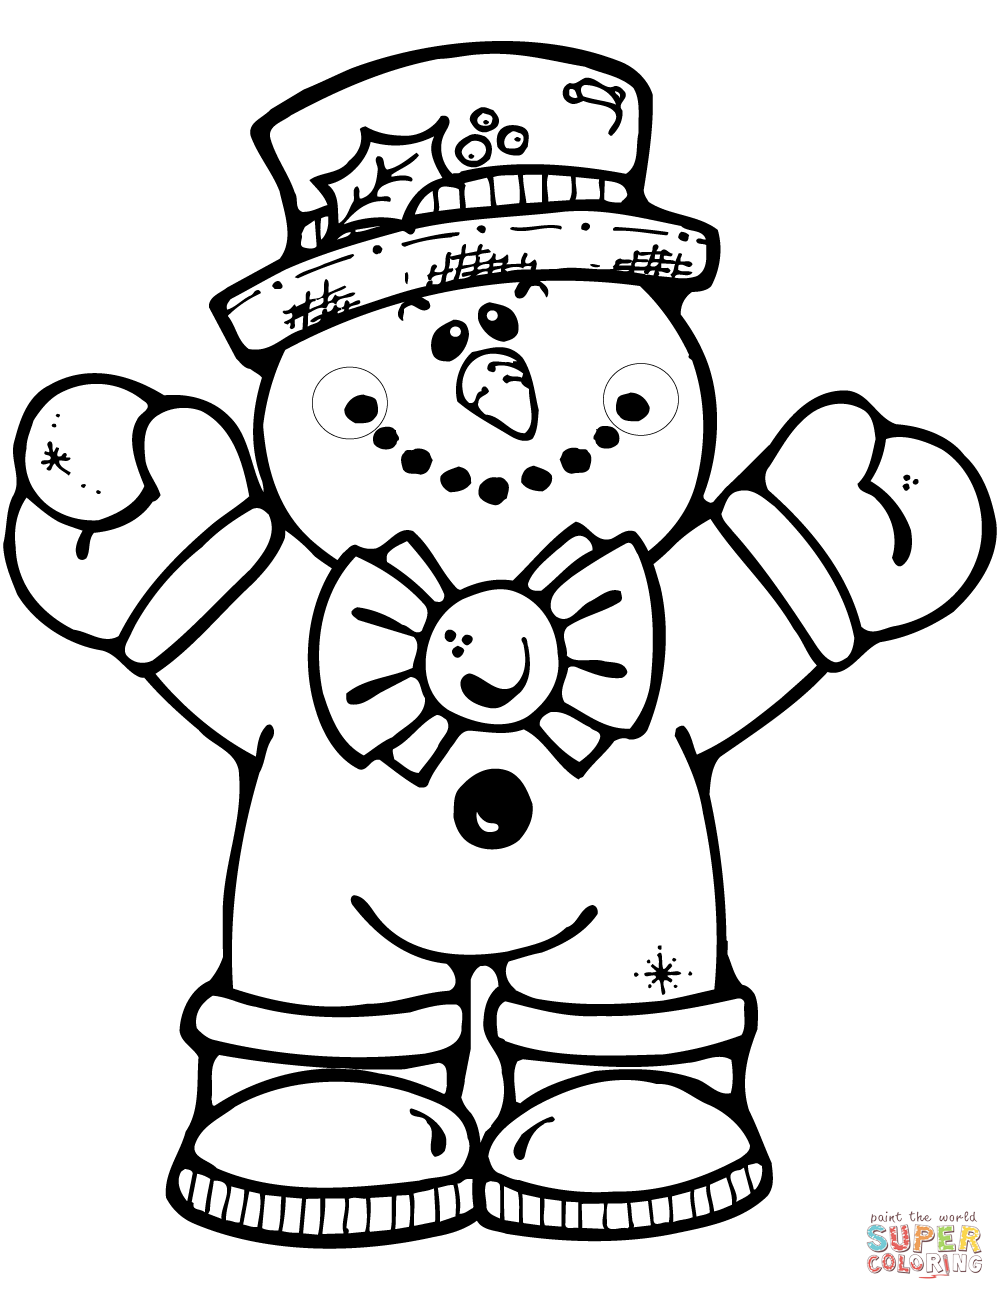 1005x1300 Free Printable Snowman Coloring Pages